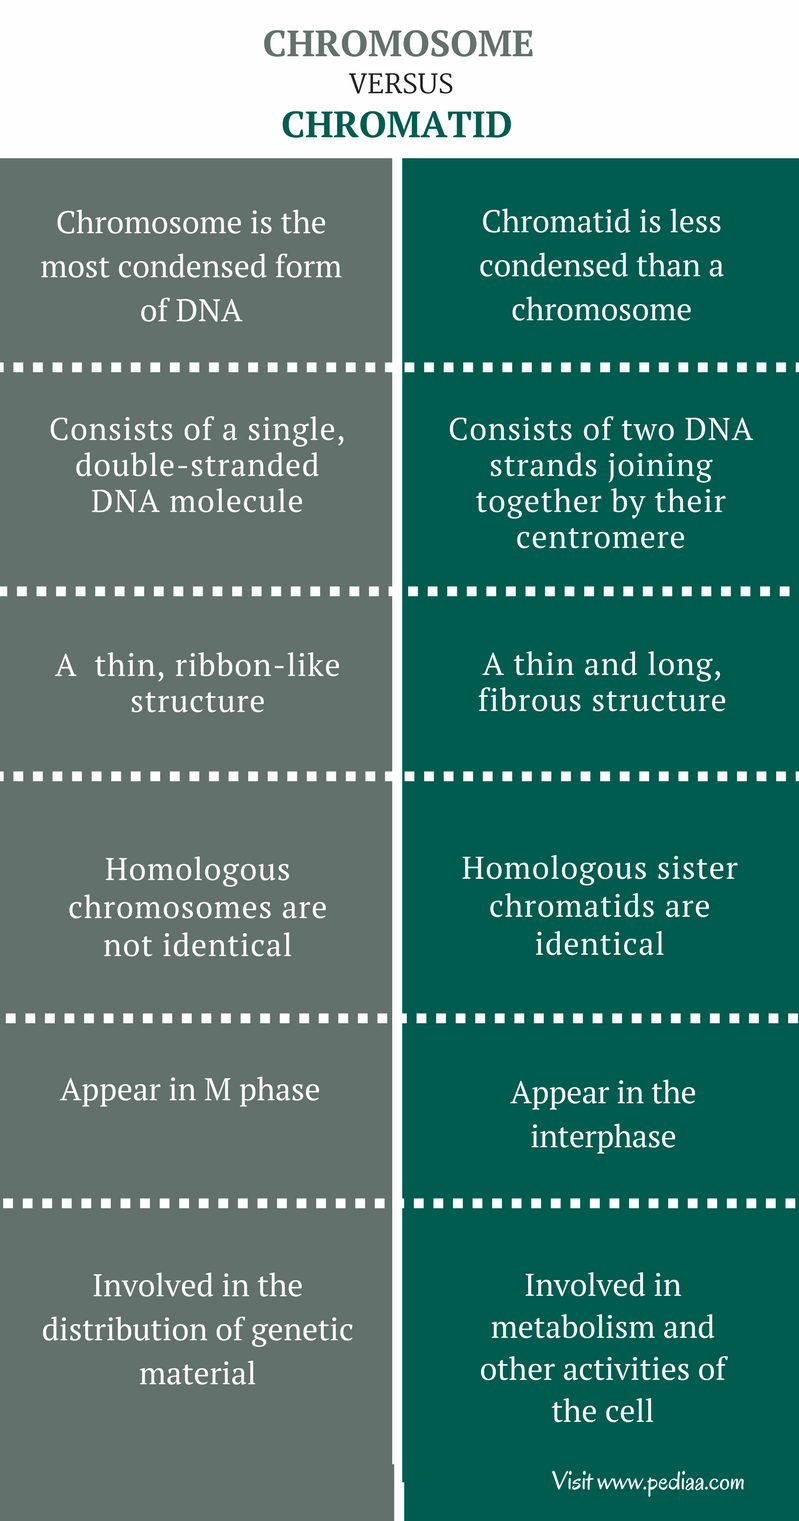 Difference Between Chromosome and Chromatid - Comparison Summary